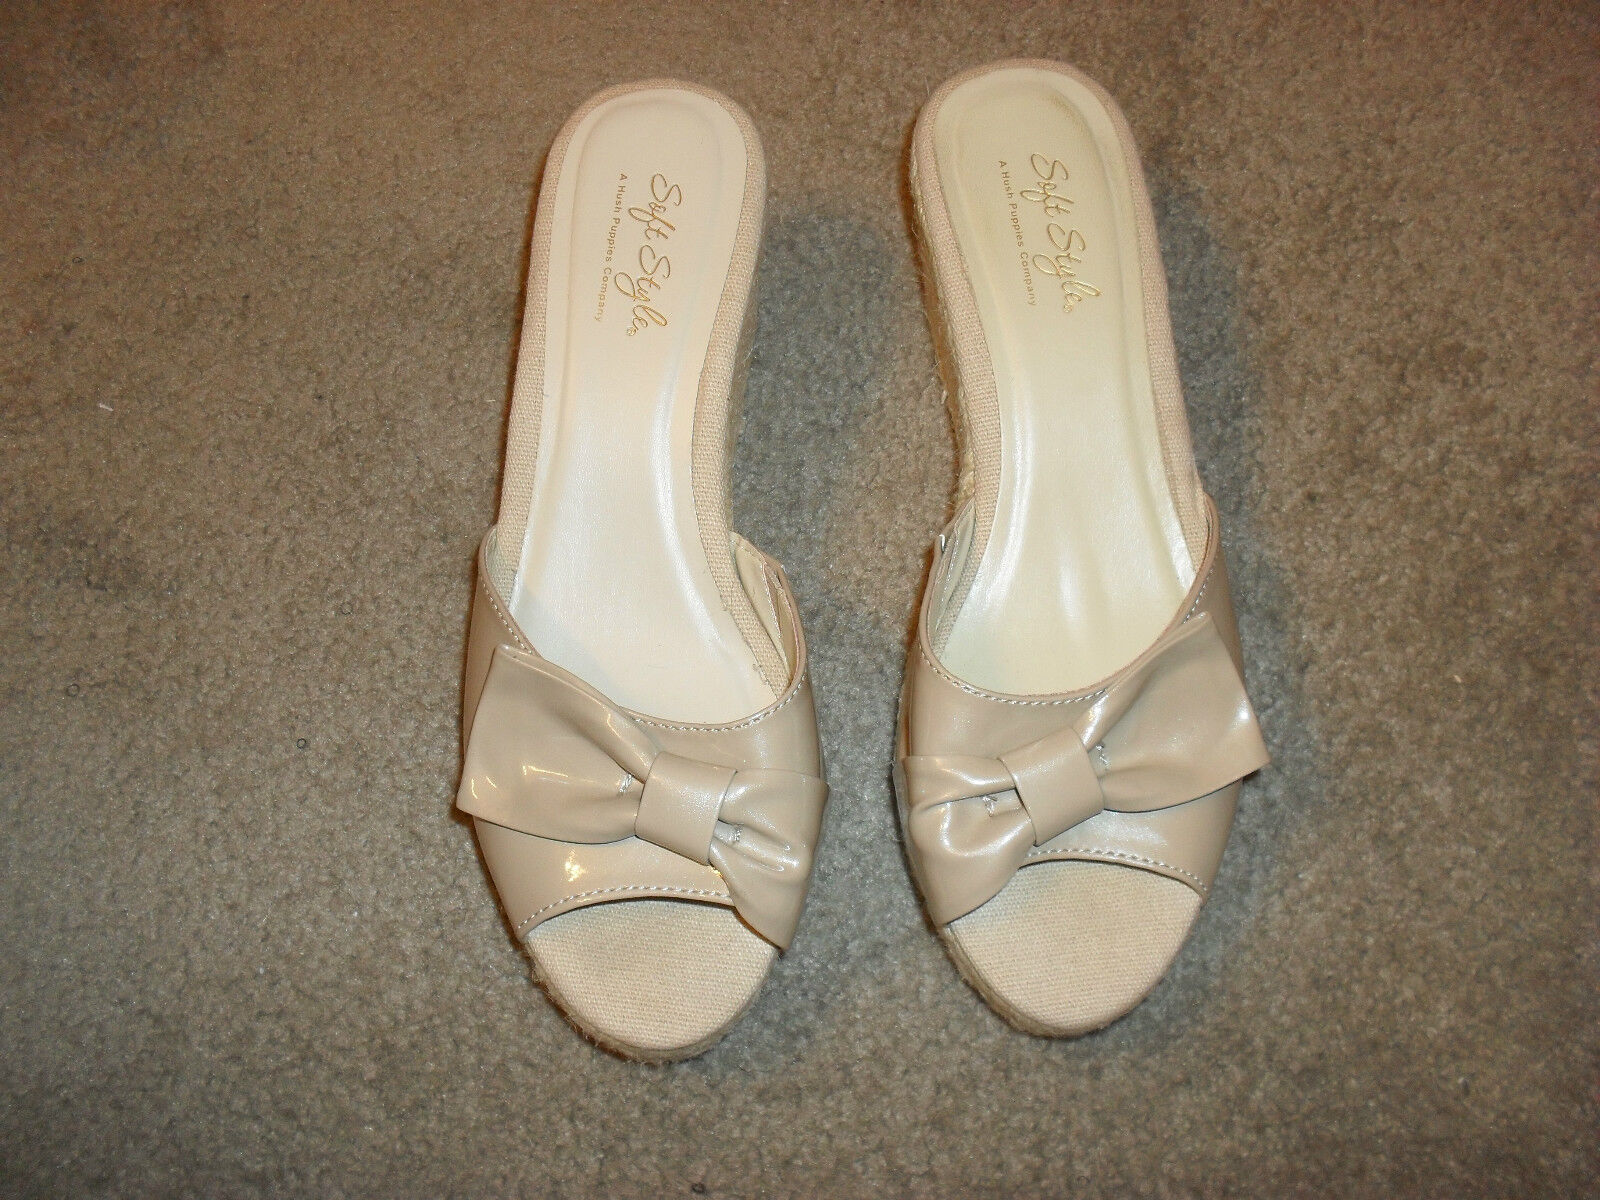 Very Gently Used Women's Soft 8.5M Styles Wedge Sandals, Size 8.5M Soft bbeac6